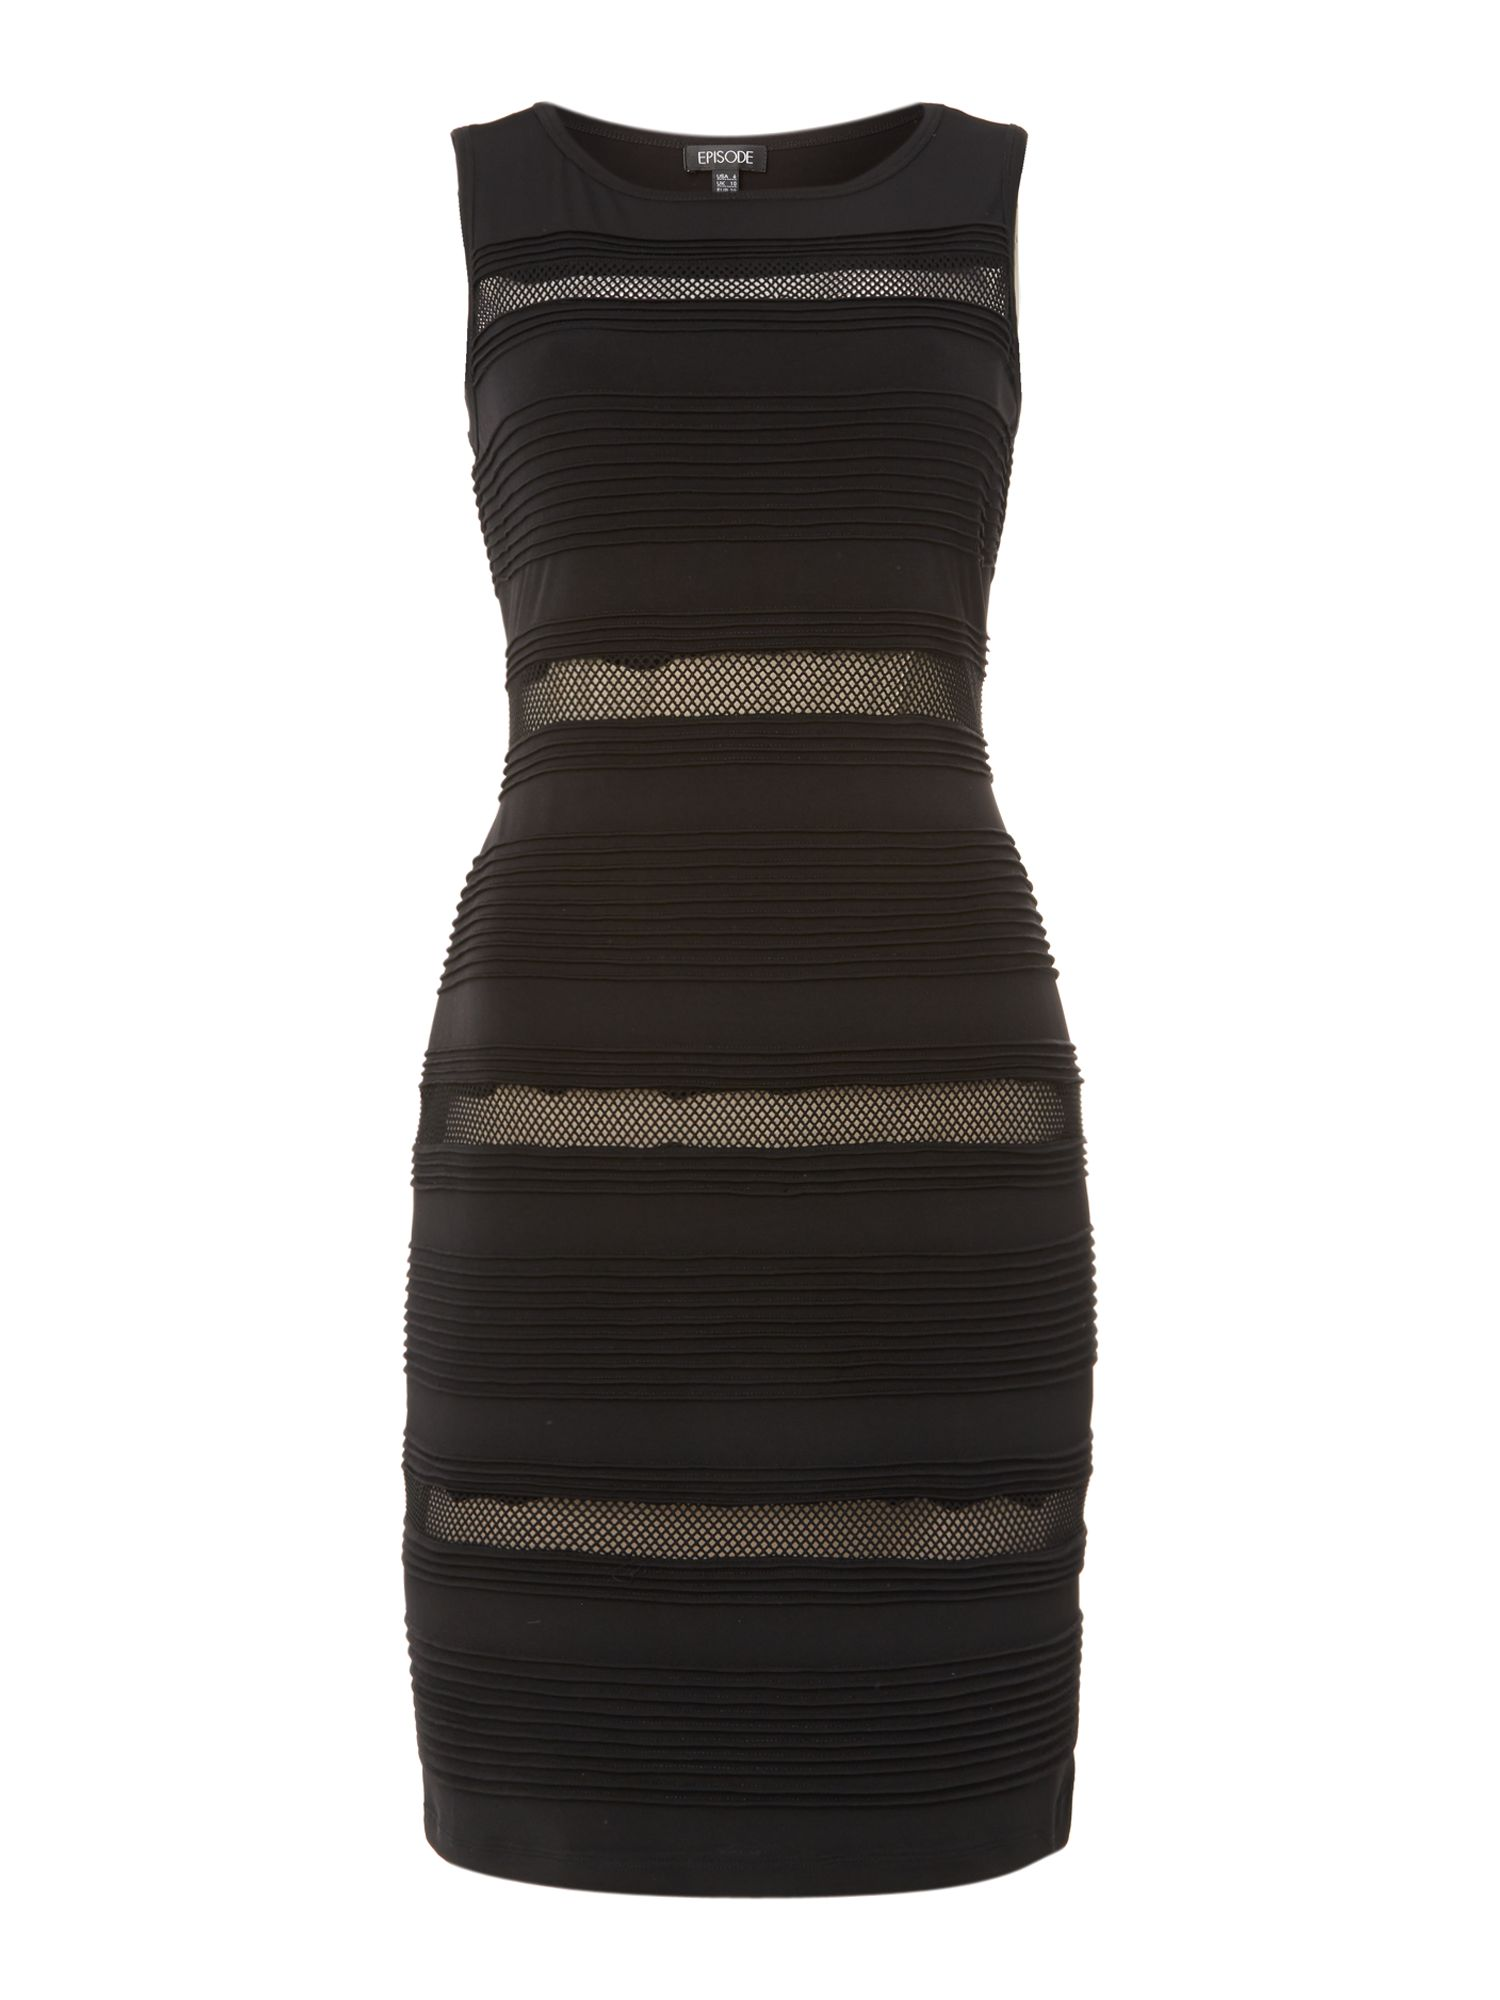 Banded shift dress